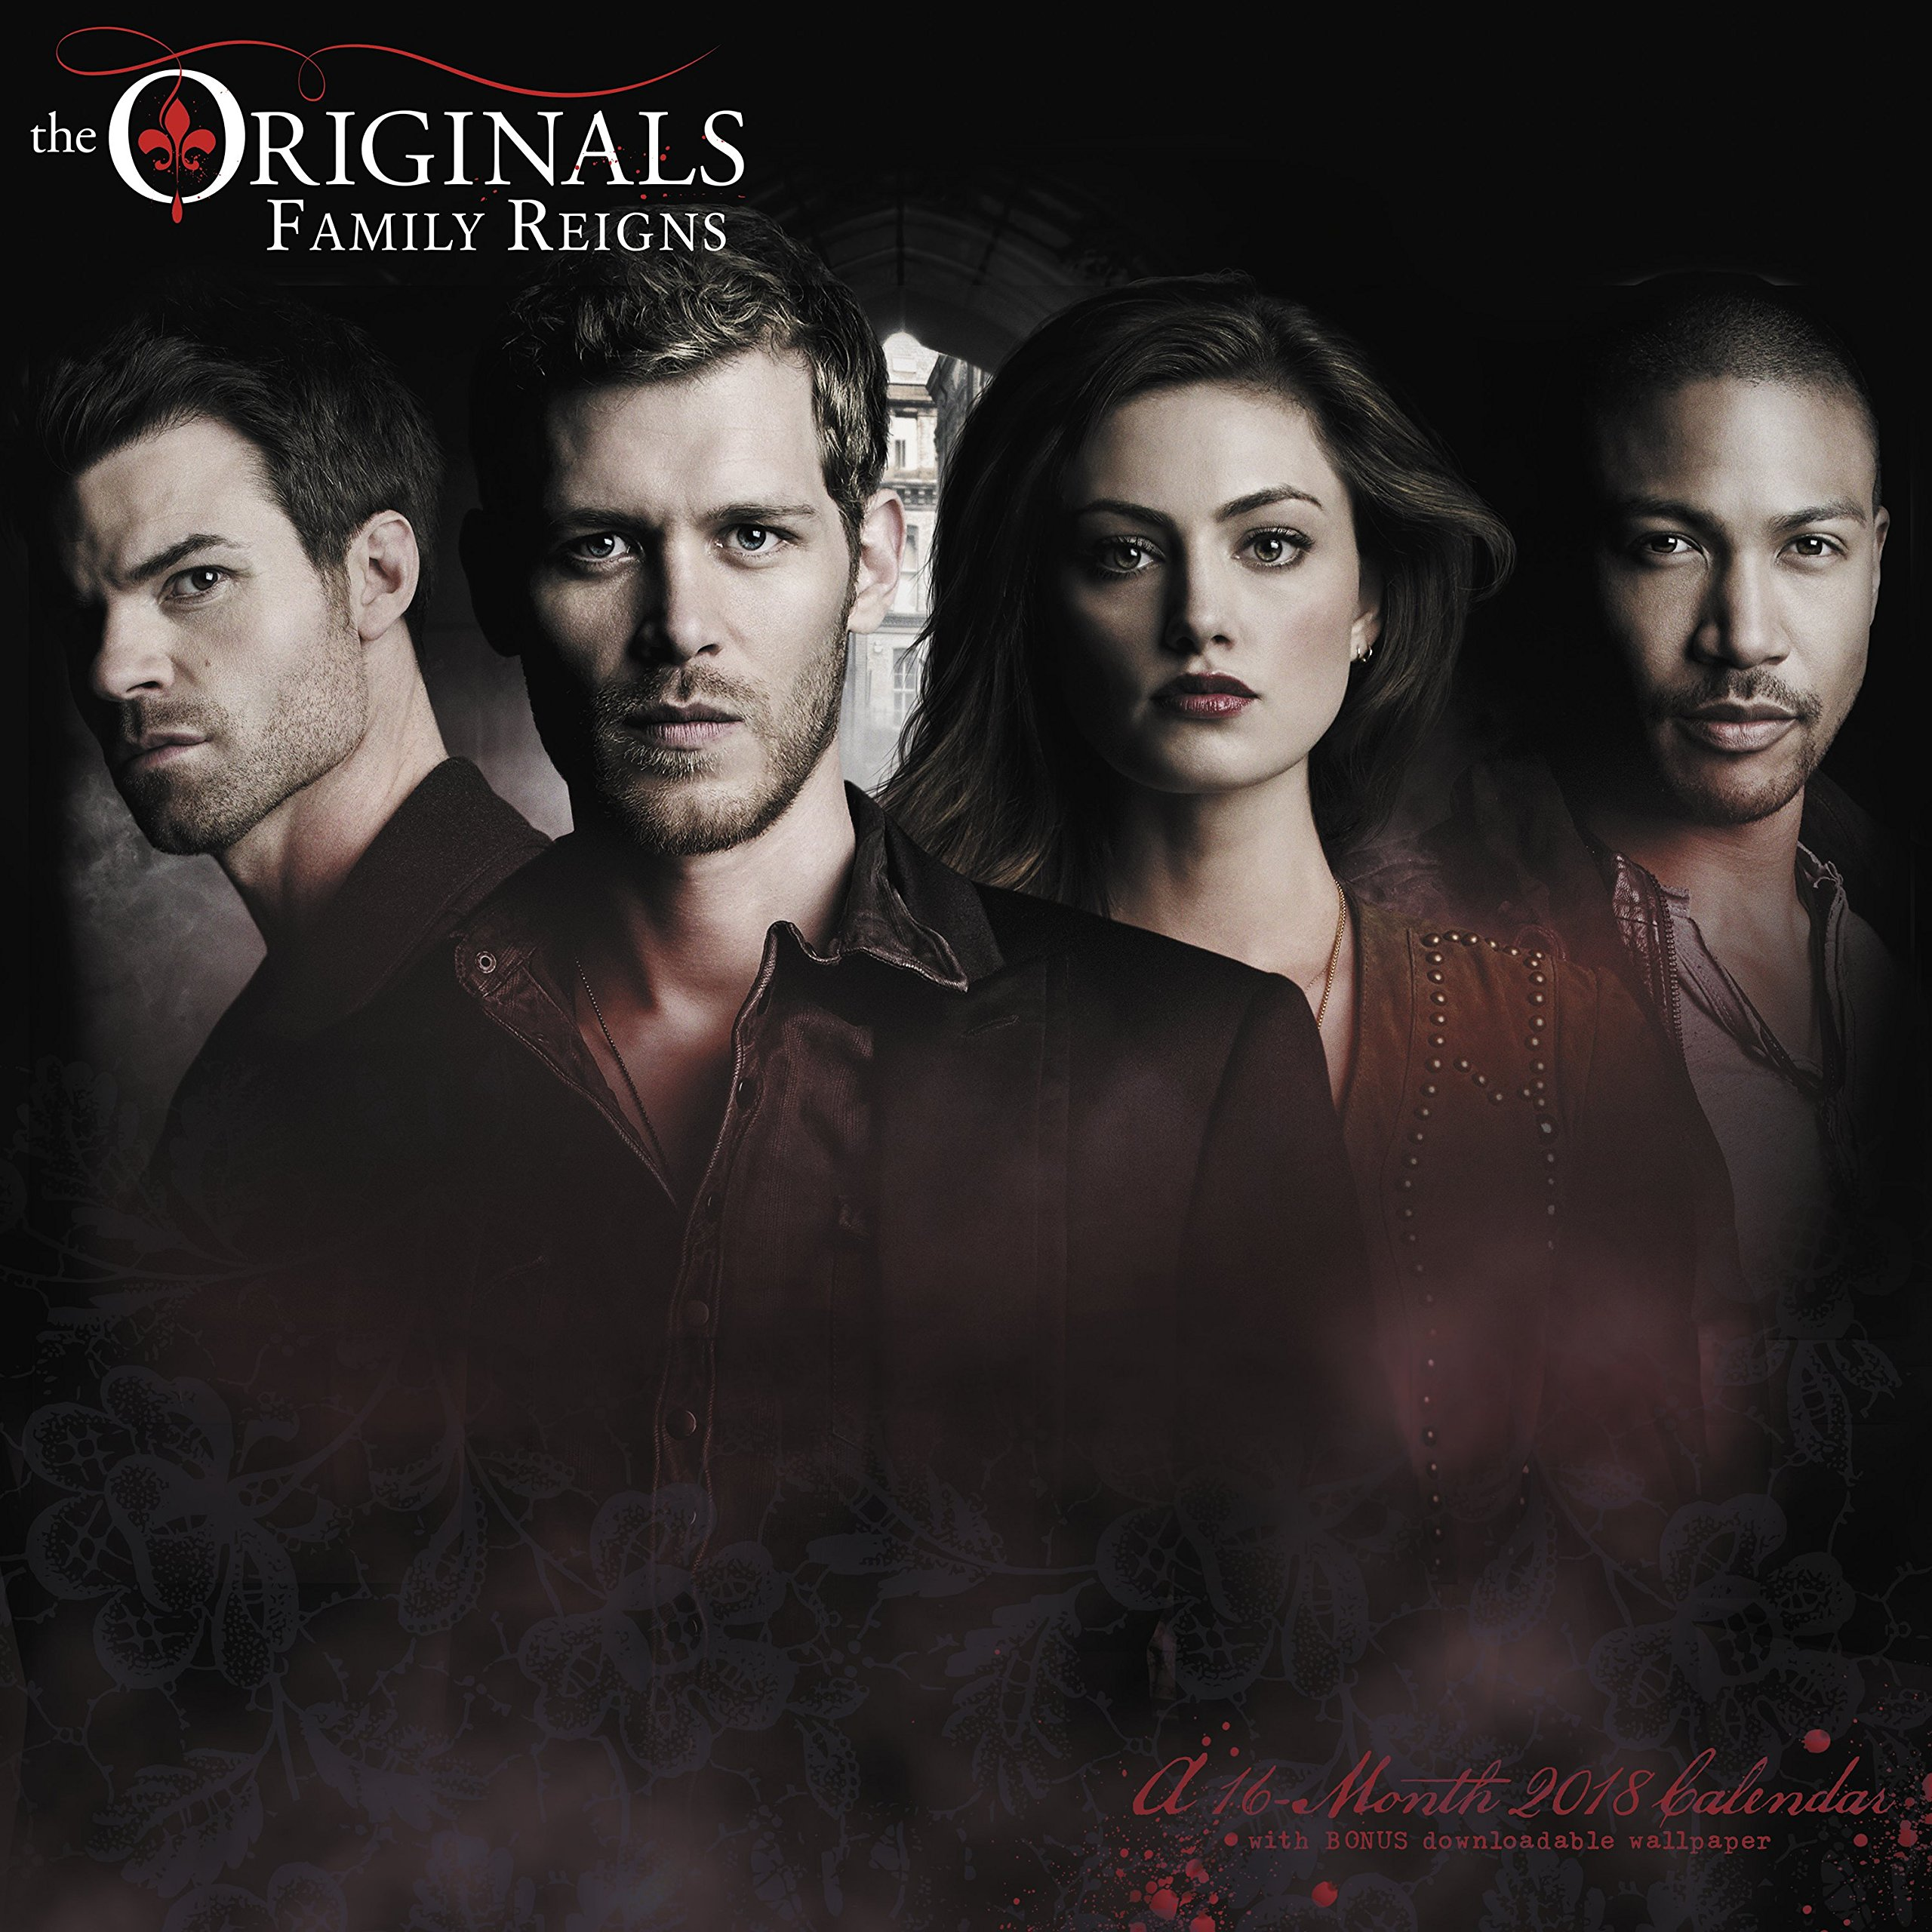 The Originals 2018 Calendar Not Available Amazoncommx